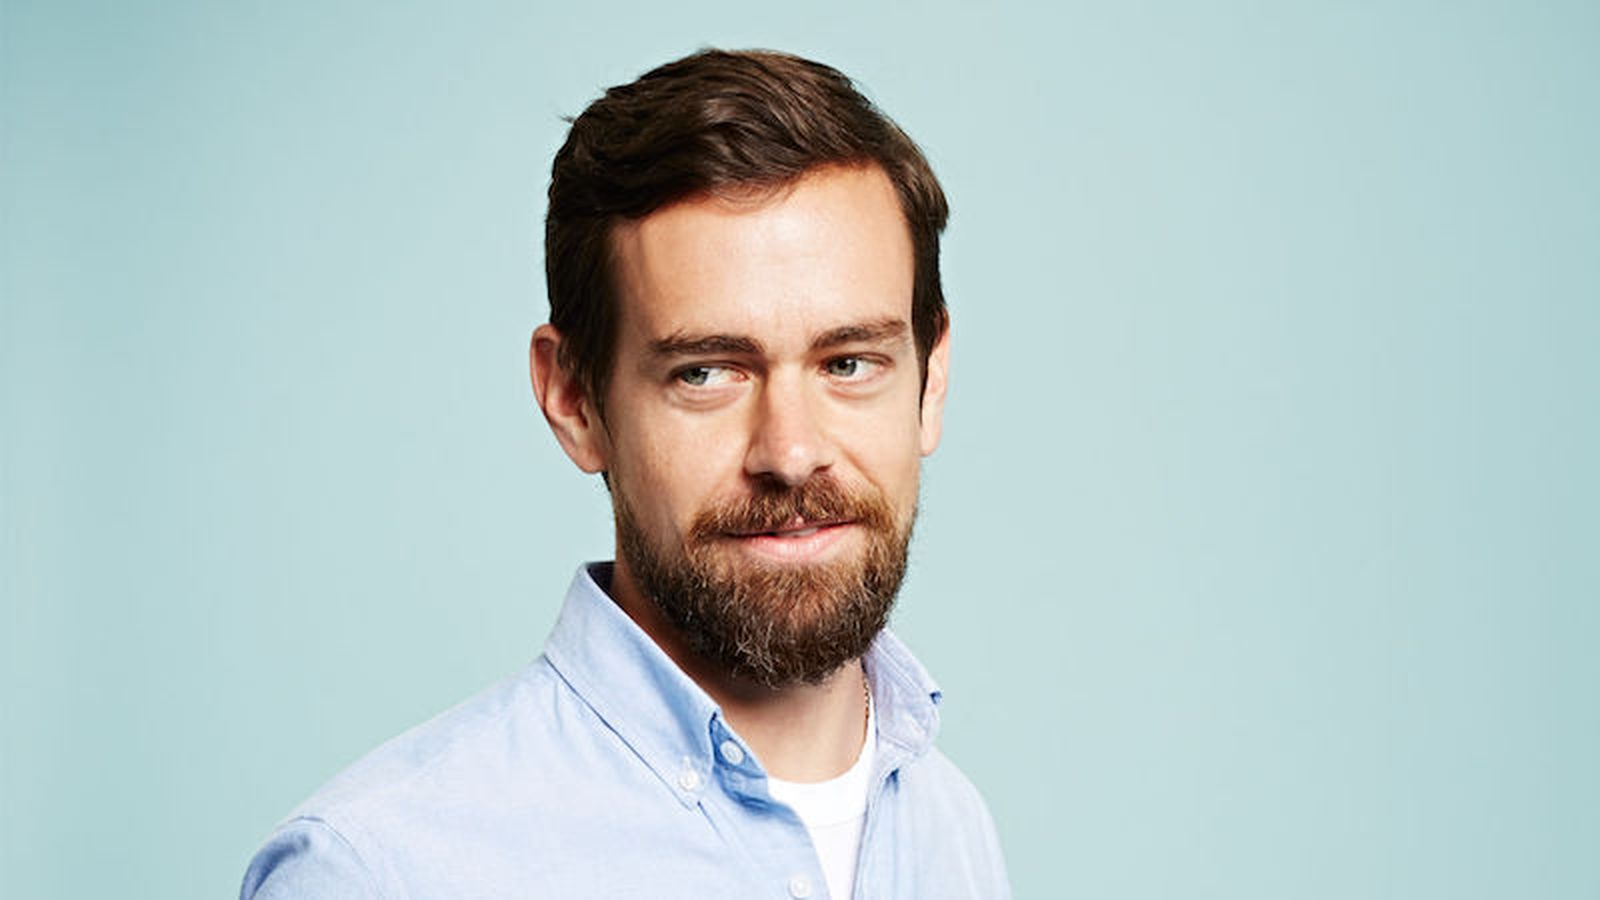 Twitter Ceo Jack Dorsey Gives Talk To Apple S Marketing Department Macrumors